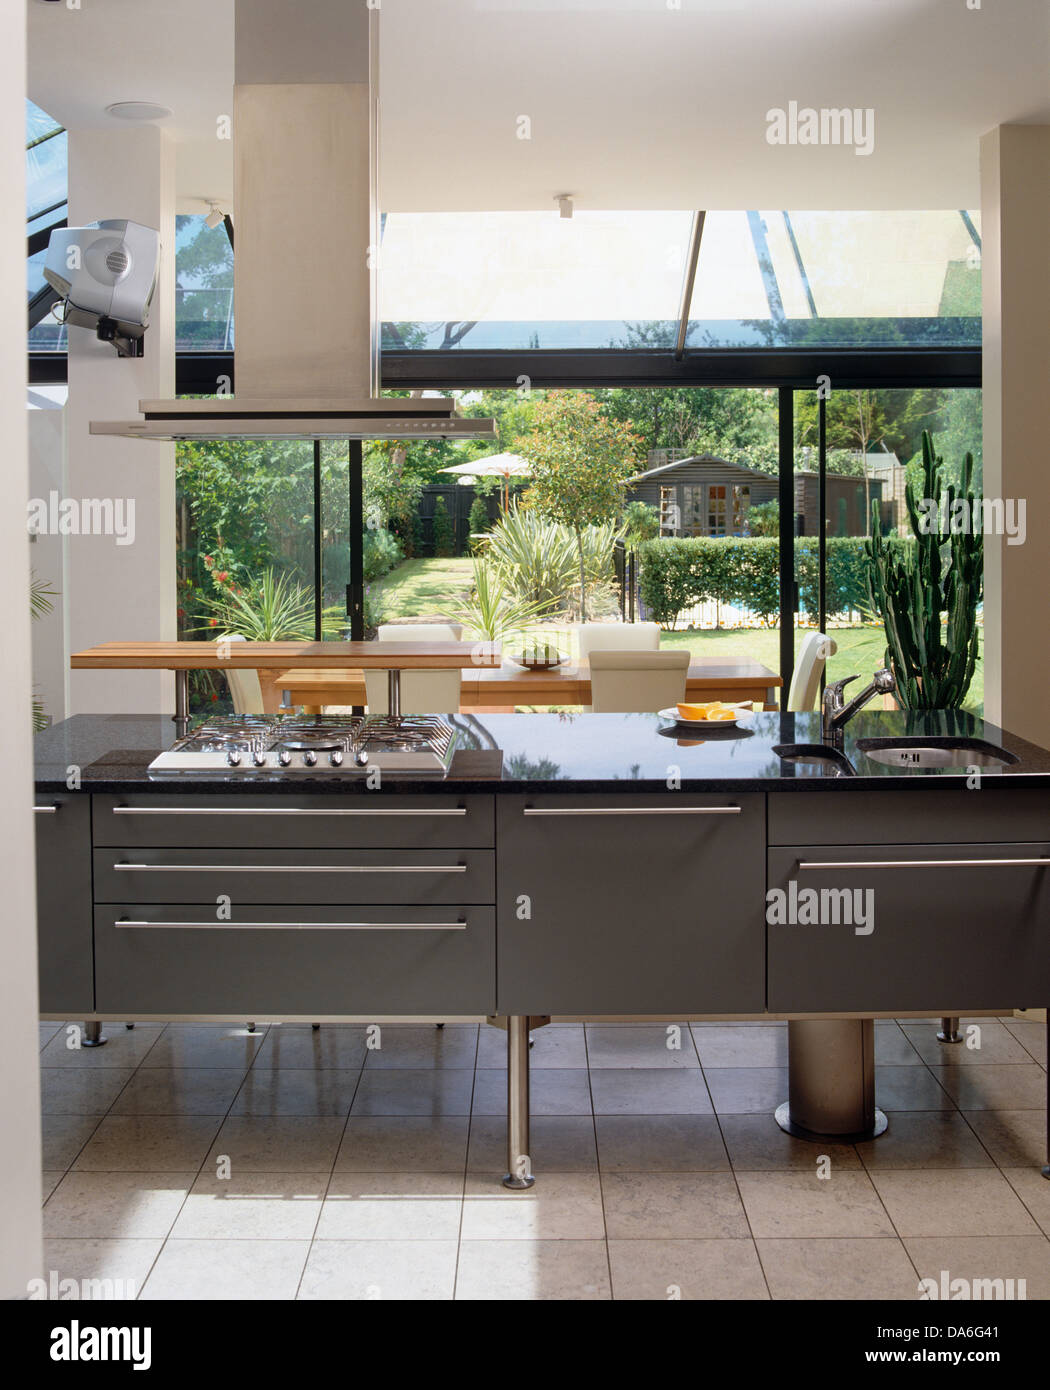 Extractor Fan Kitchen Island Stock Photos Amp Extractor Fan